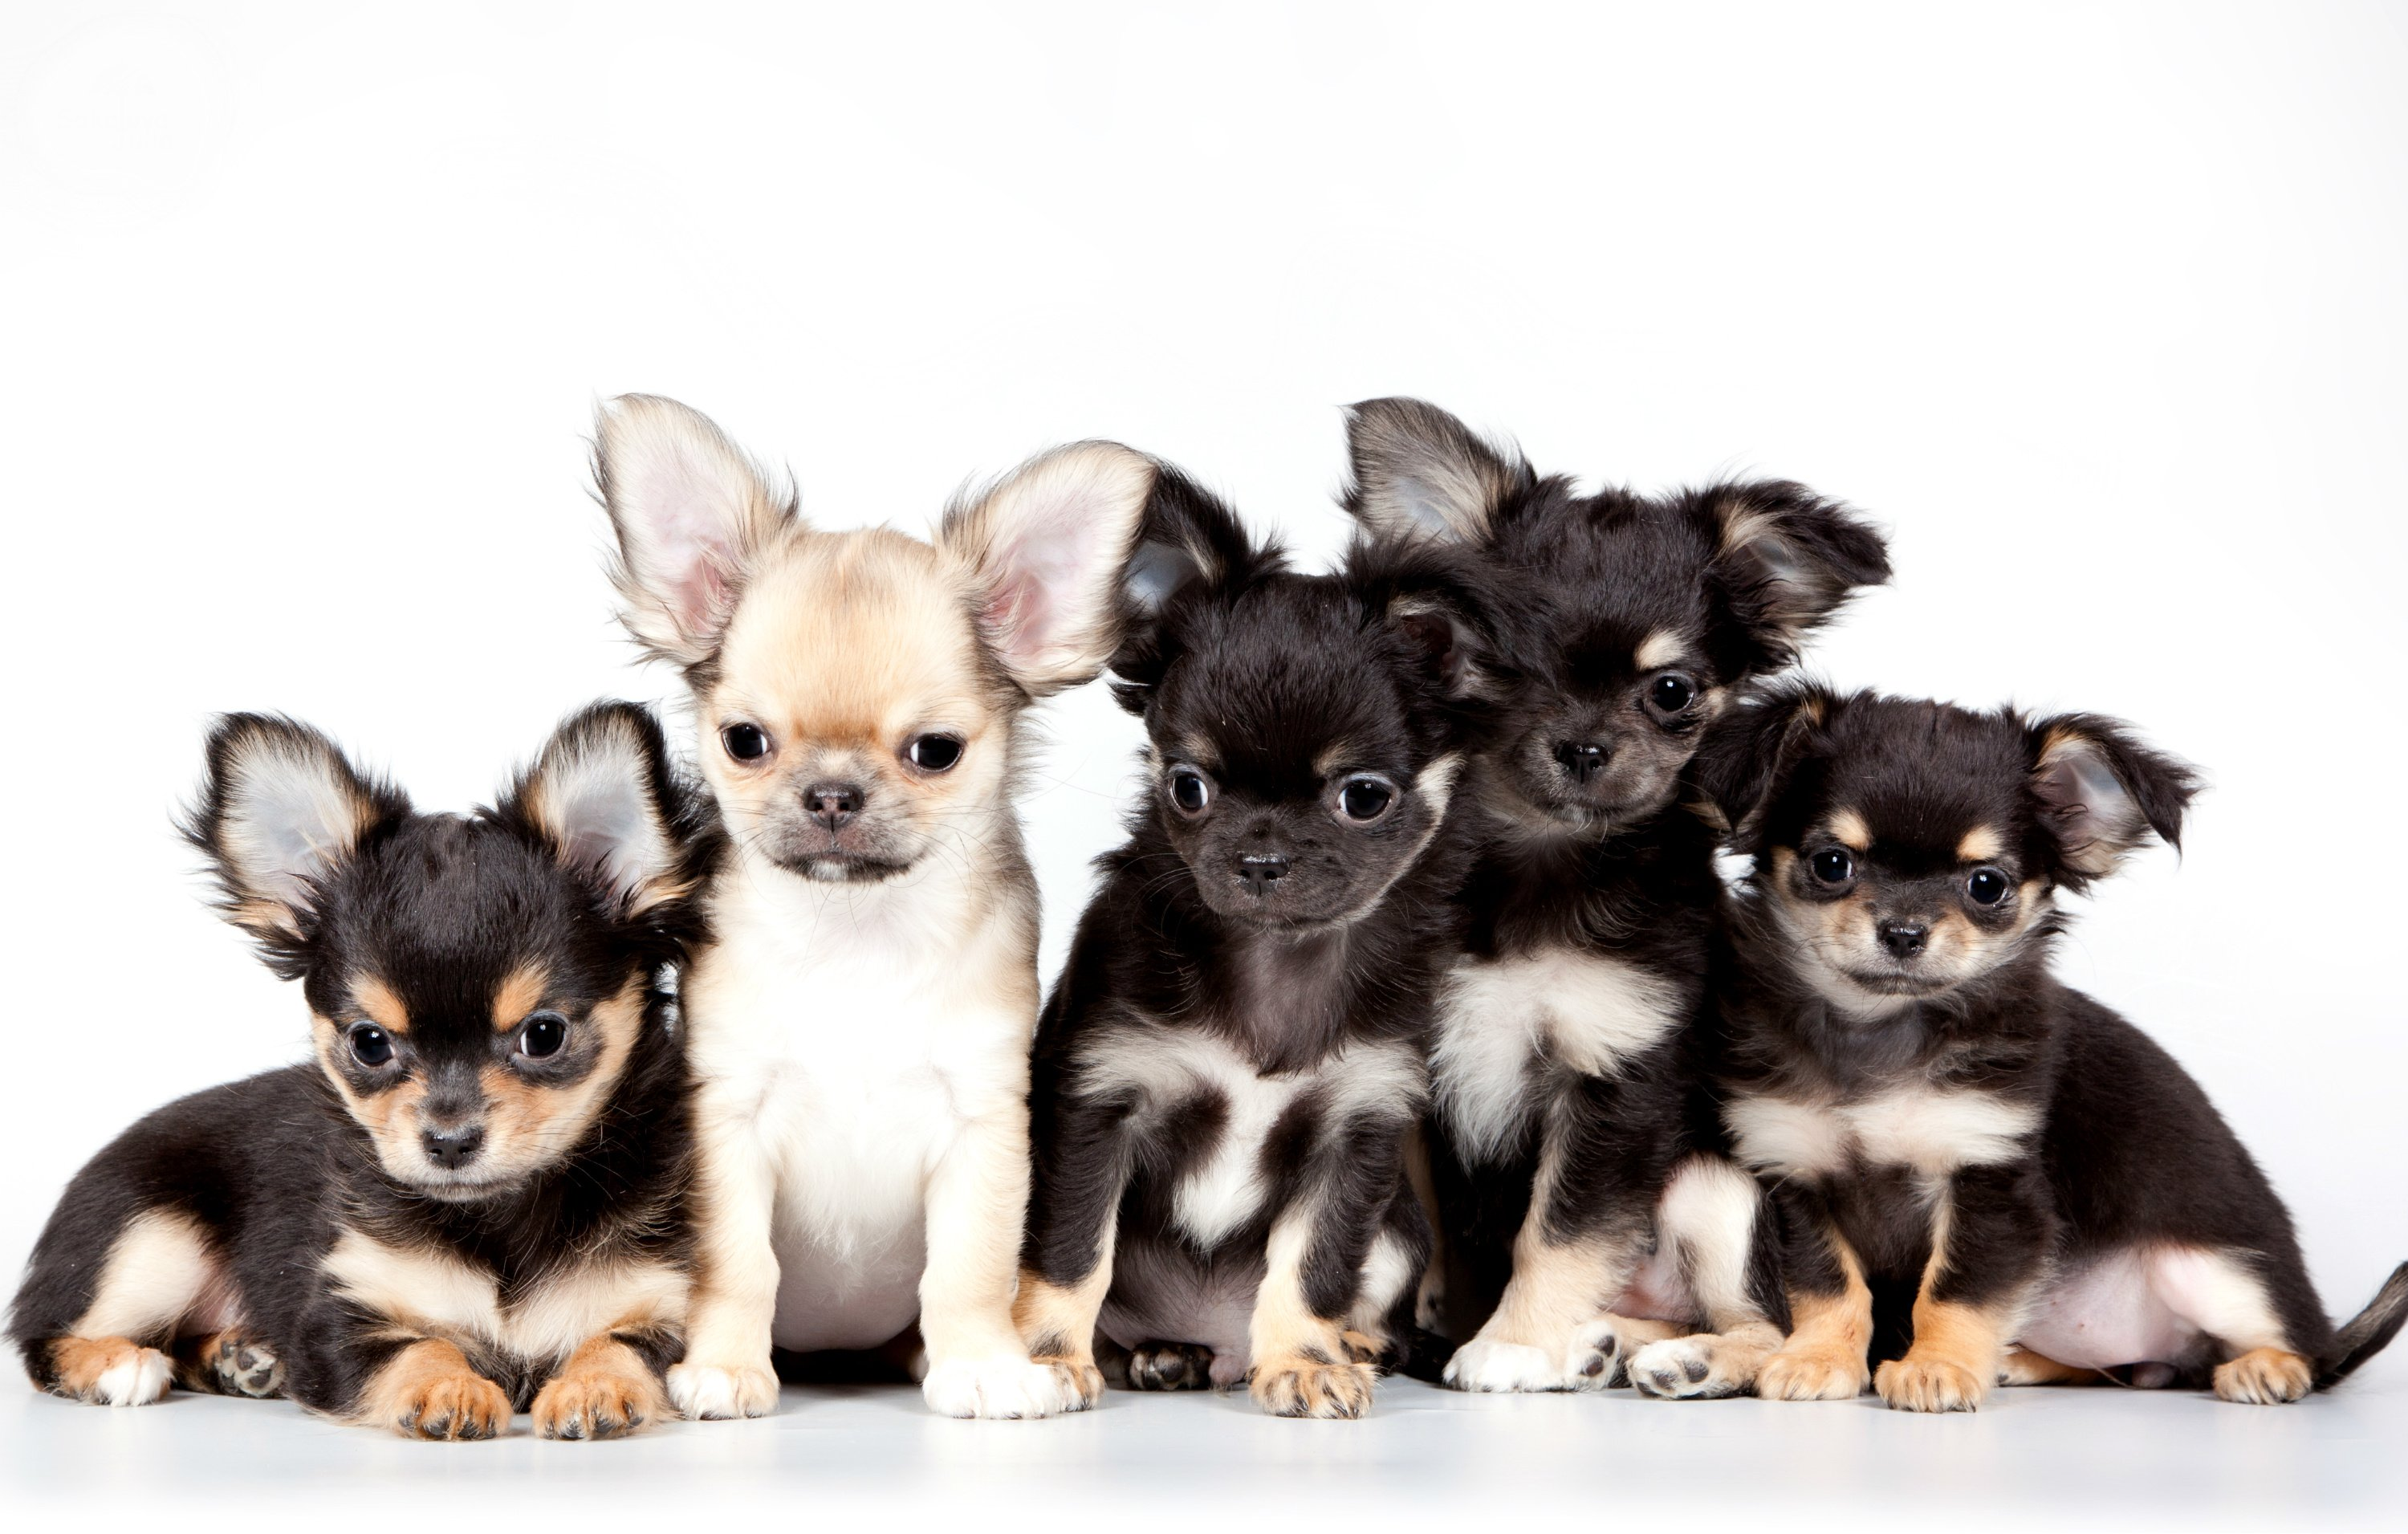 Cute Chihuahua Puppy Wallpaper Chihuahua Dog Puppy Baby Wallpaper 3000x1911 719394